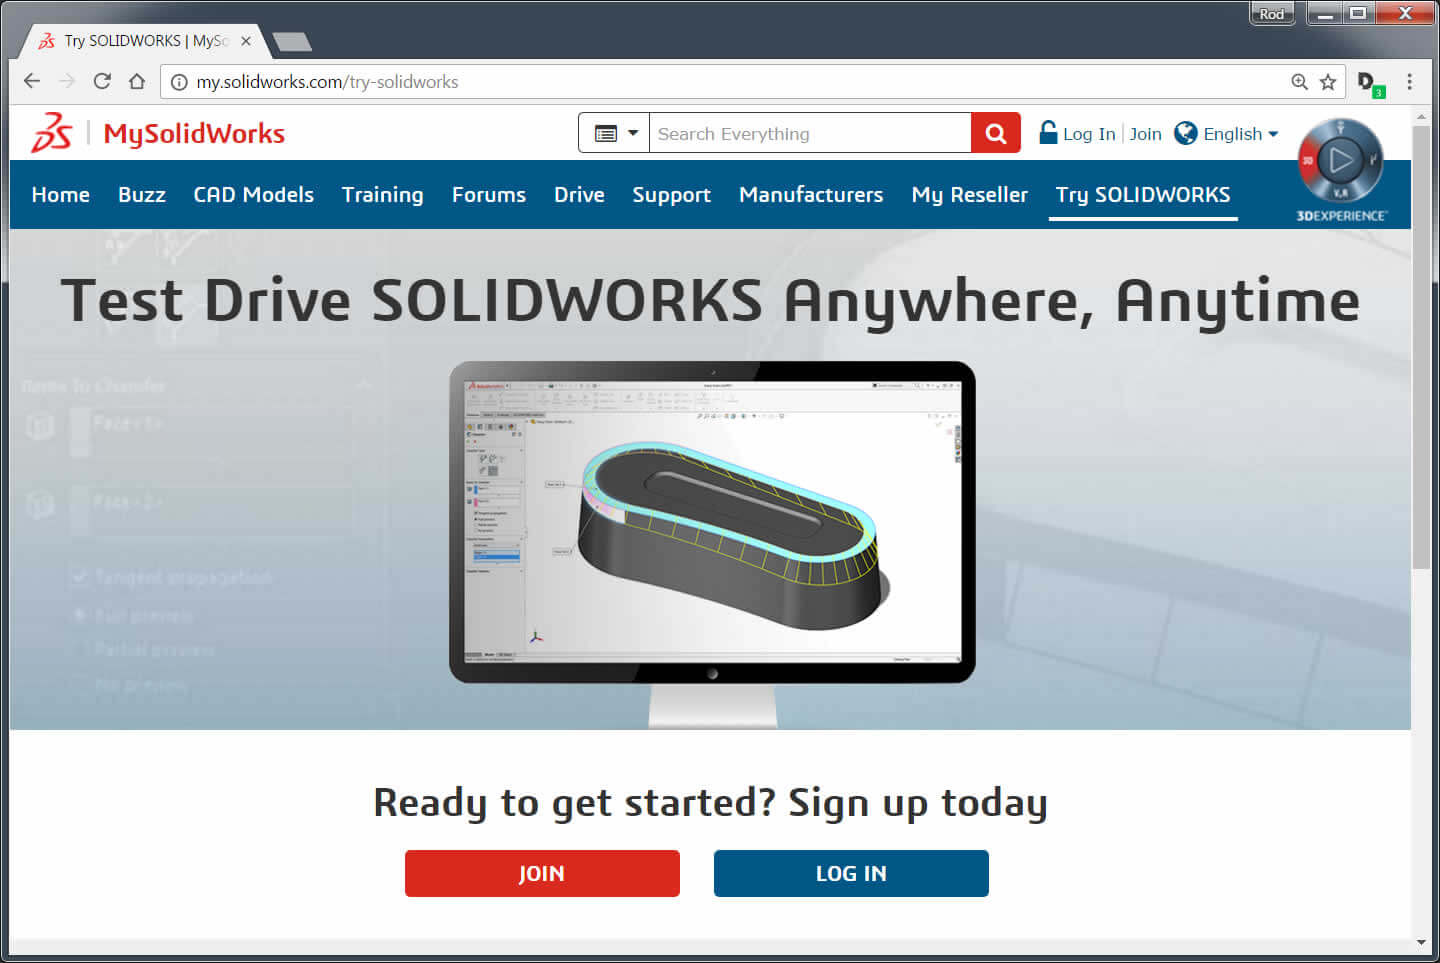 SOLIDWORKS Free Trial Access